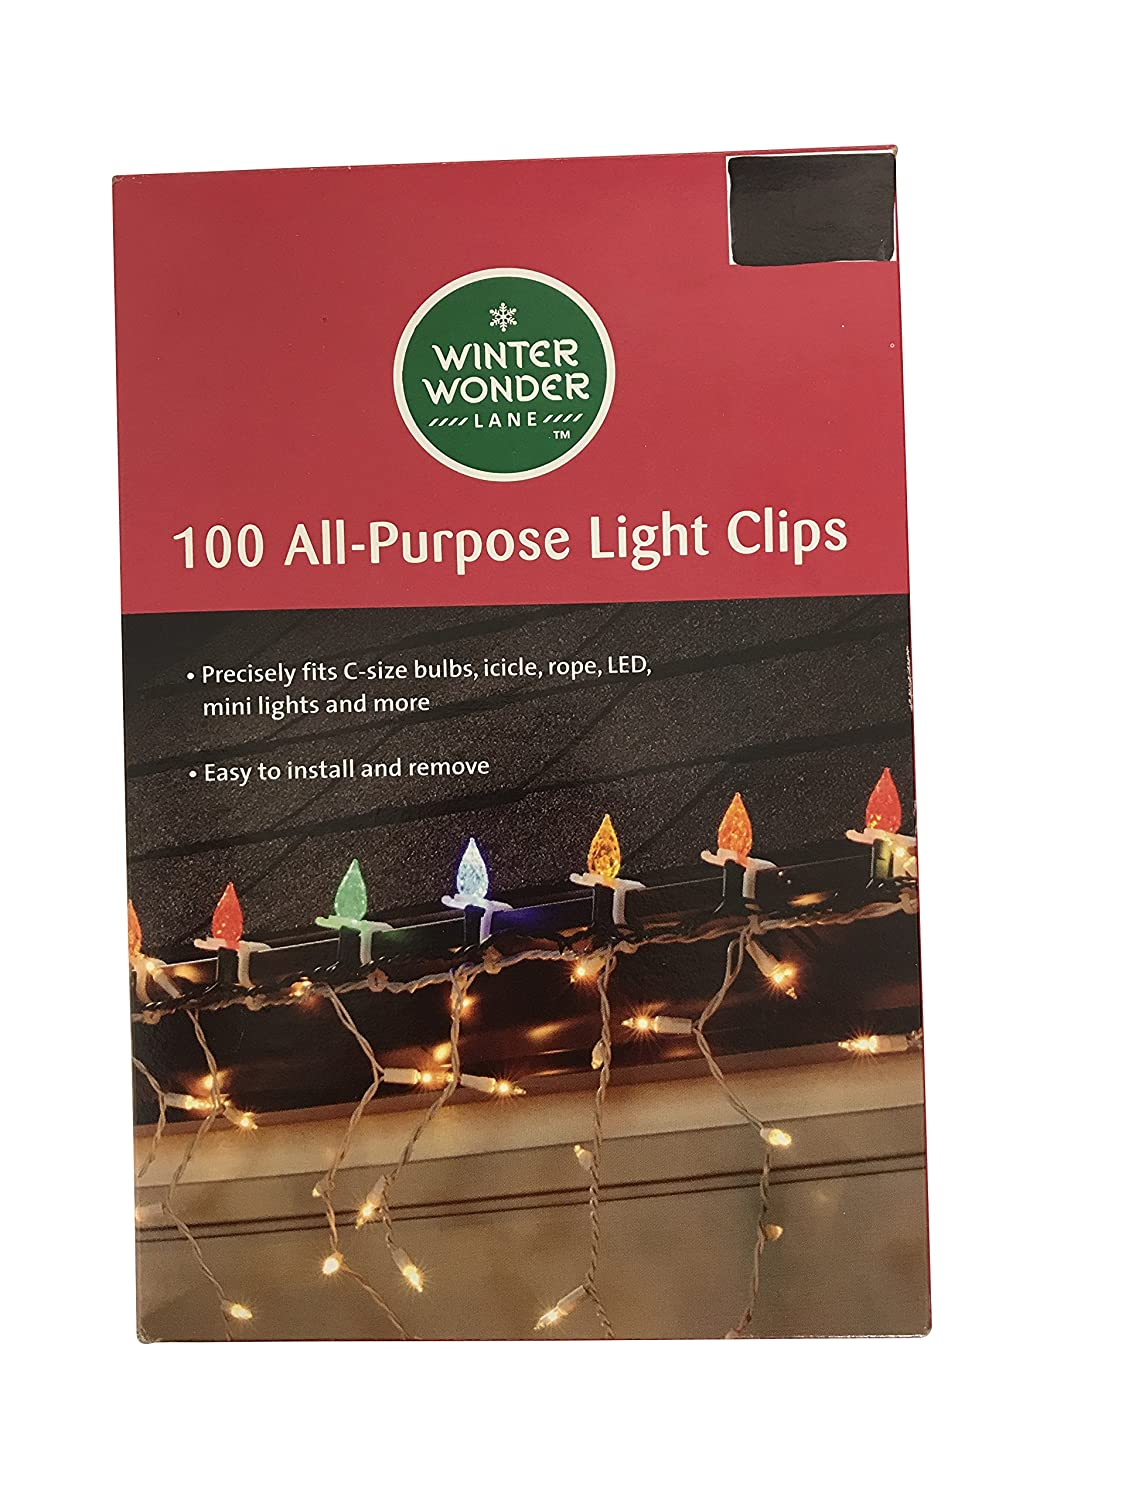 100 Large All-Purpose Christmas Light Clips for Hanging Lights on Shingles or Gutter, Fits C-Size, Icicle, Rope, LED, Mini Lights, and More Adams Manufacturing